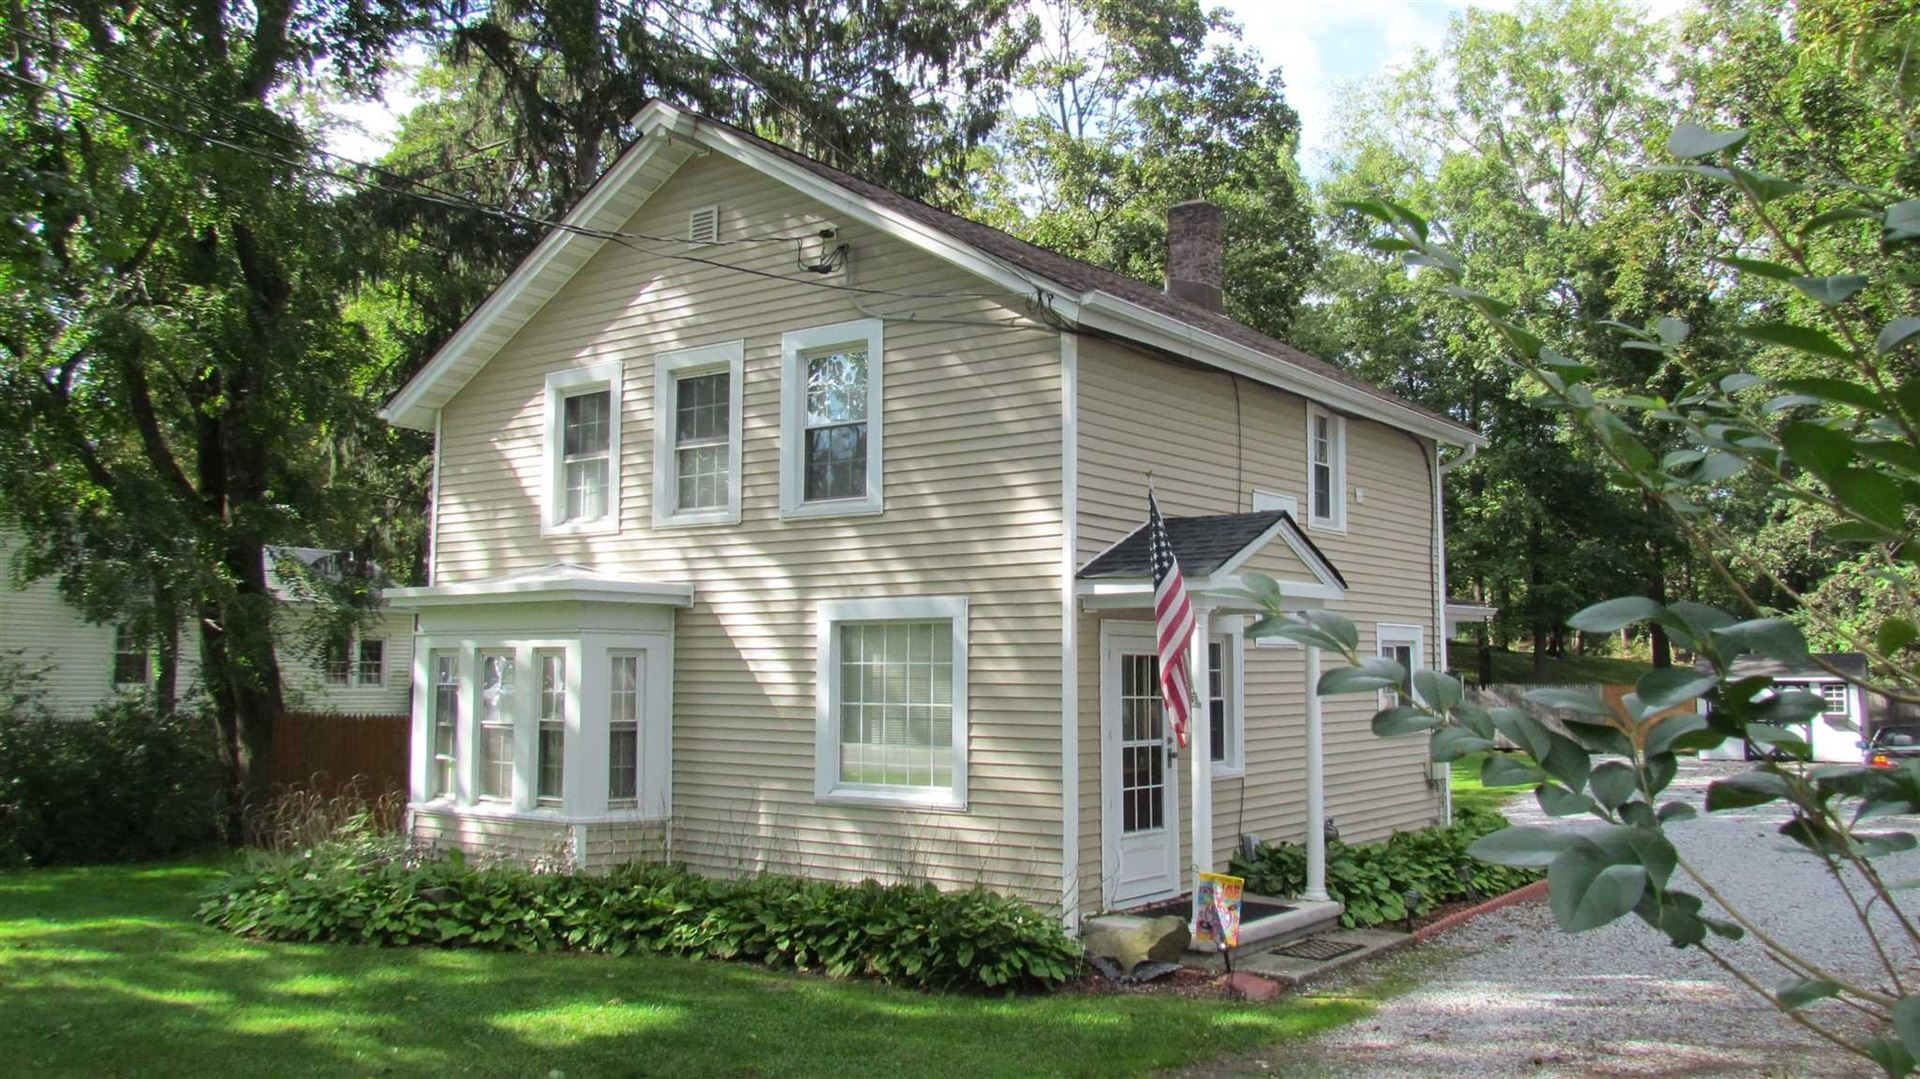 2385 ROUTE 9D, Wappingers Falls, NY 12590 - #: 403752